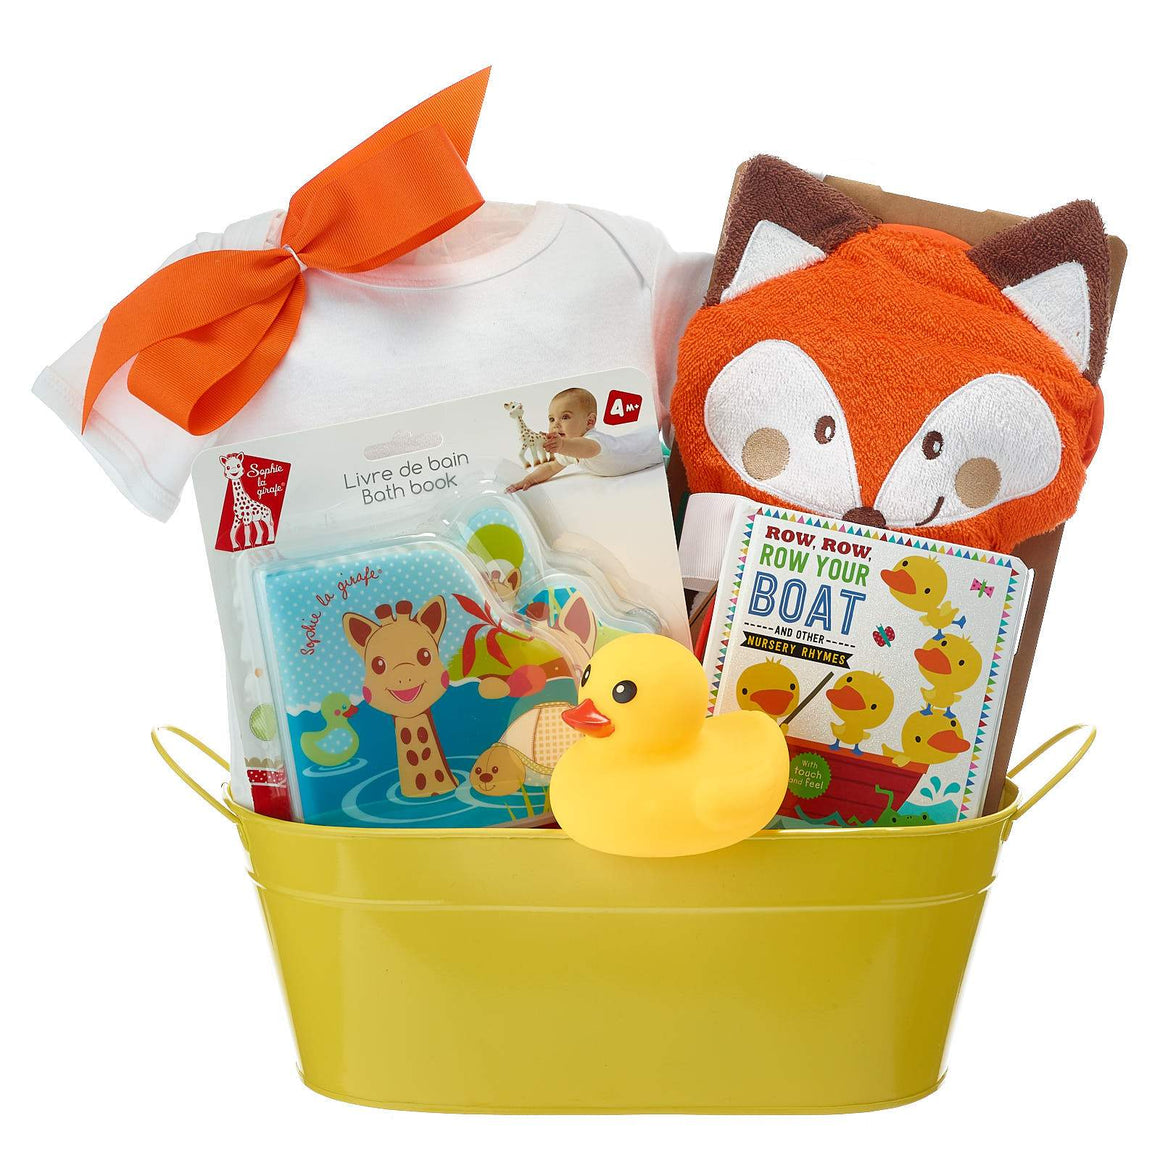 Bath Toy Gifts For Newborn